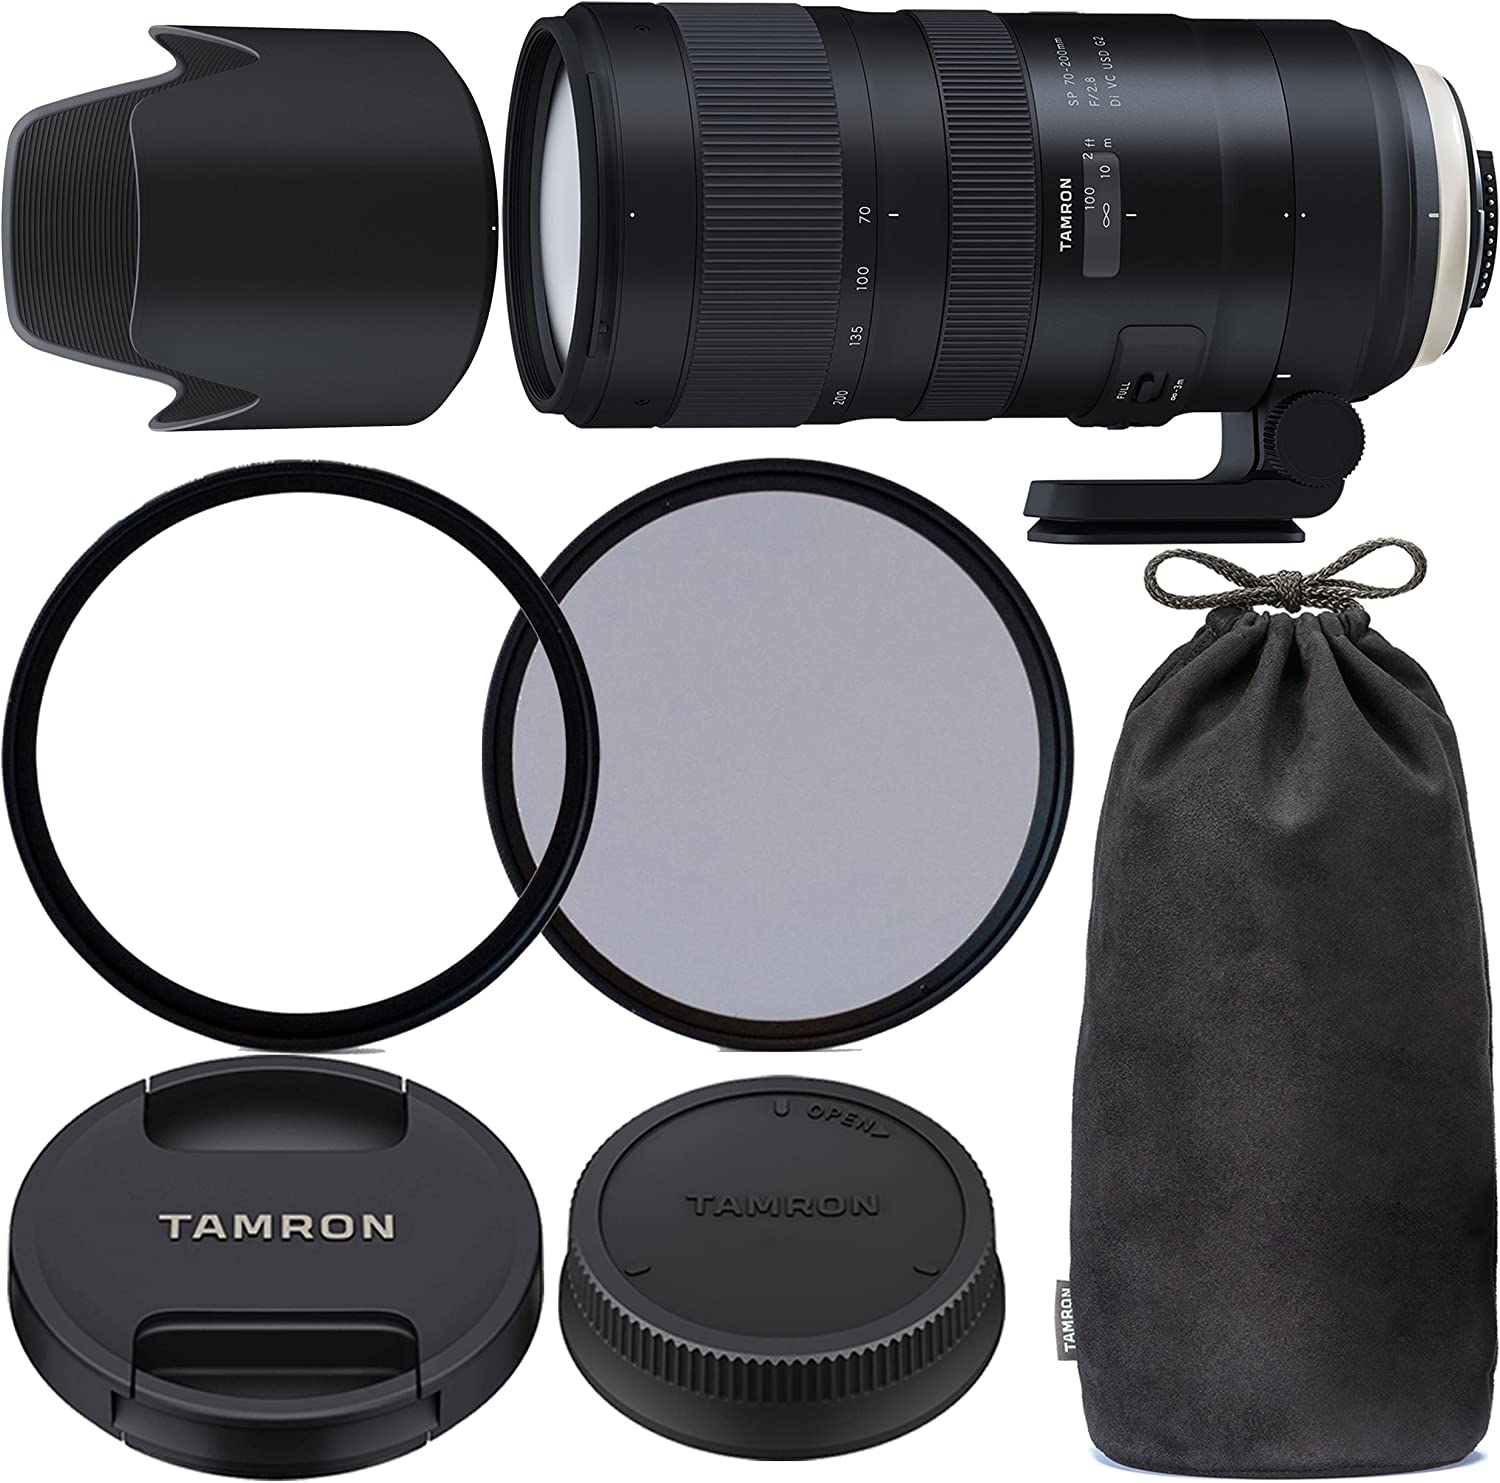 Ultraviolet UV Multi-Coated HD Glass Protection Filter for Tamron 100-300mm f//5-6.3 Lens